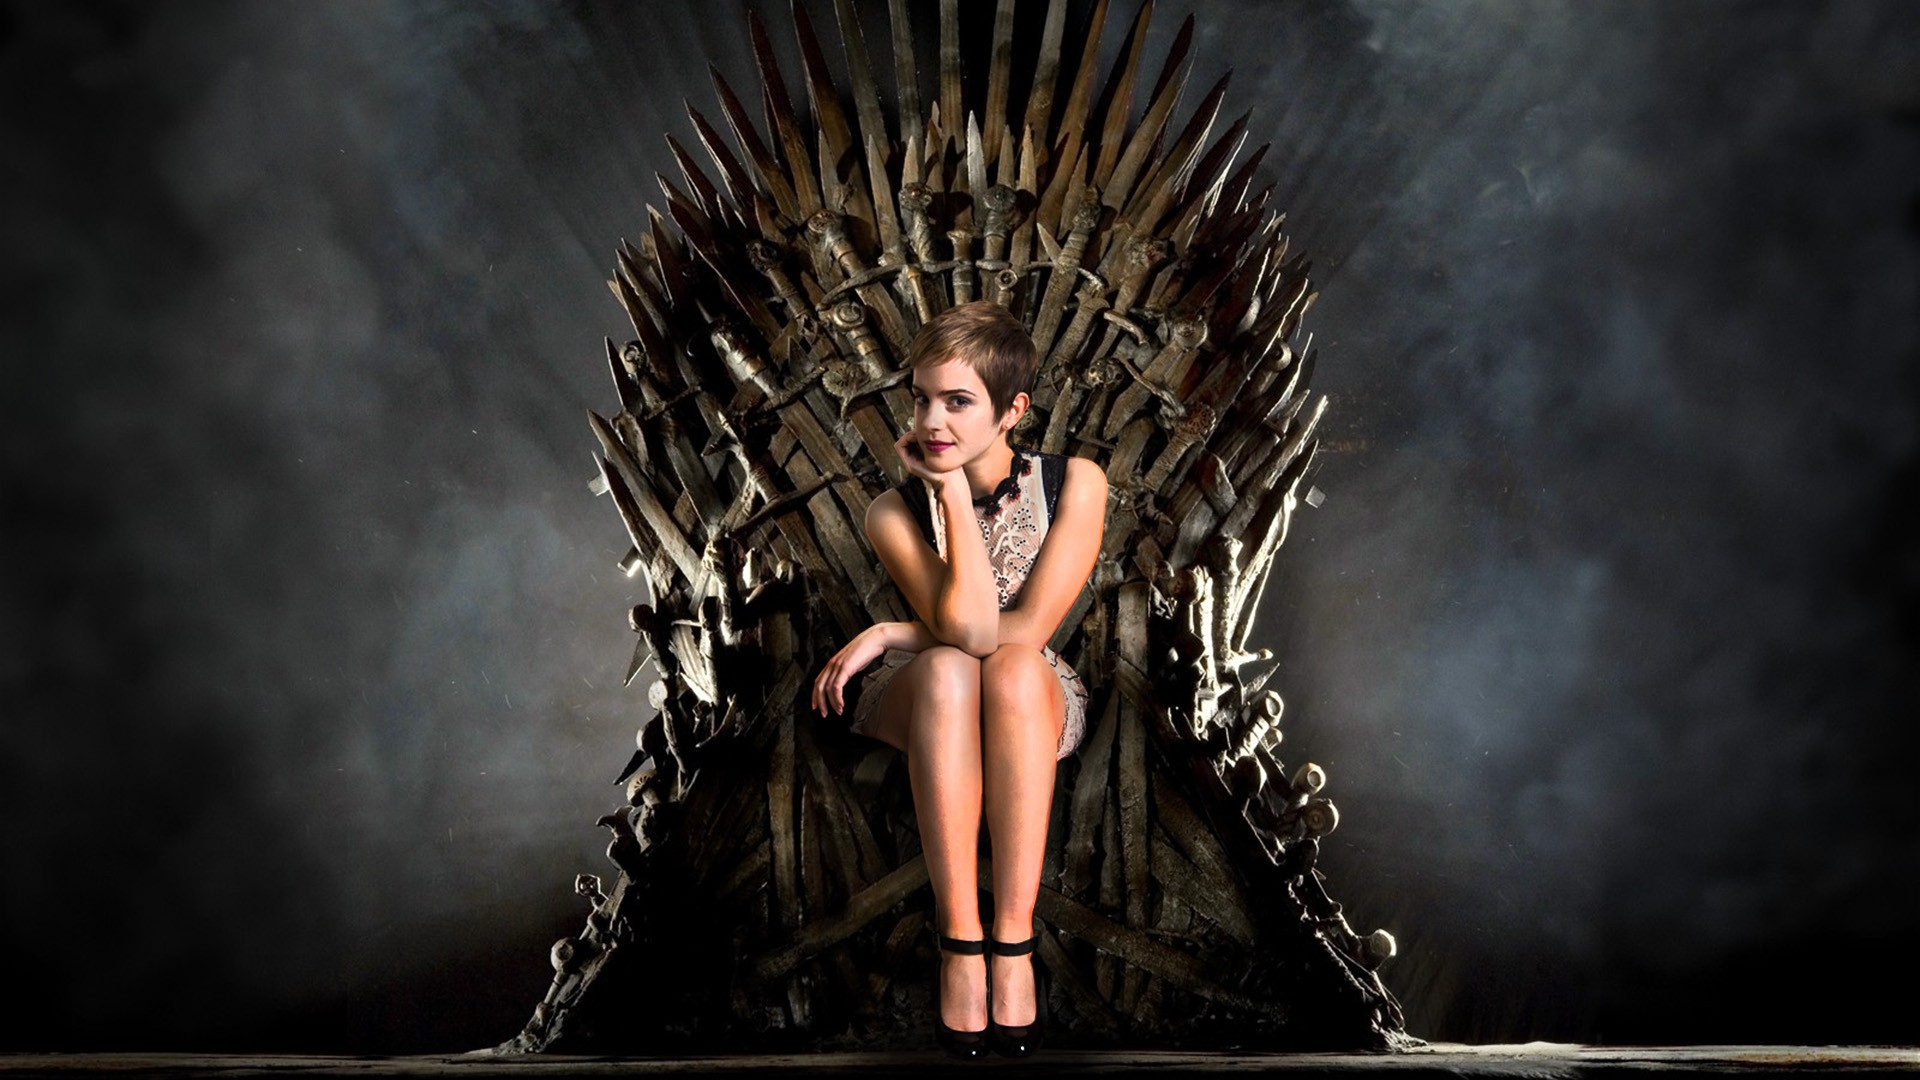 game de thrones, emma watson fonds d'écran hd